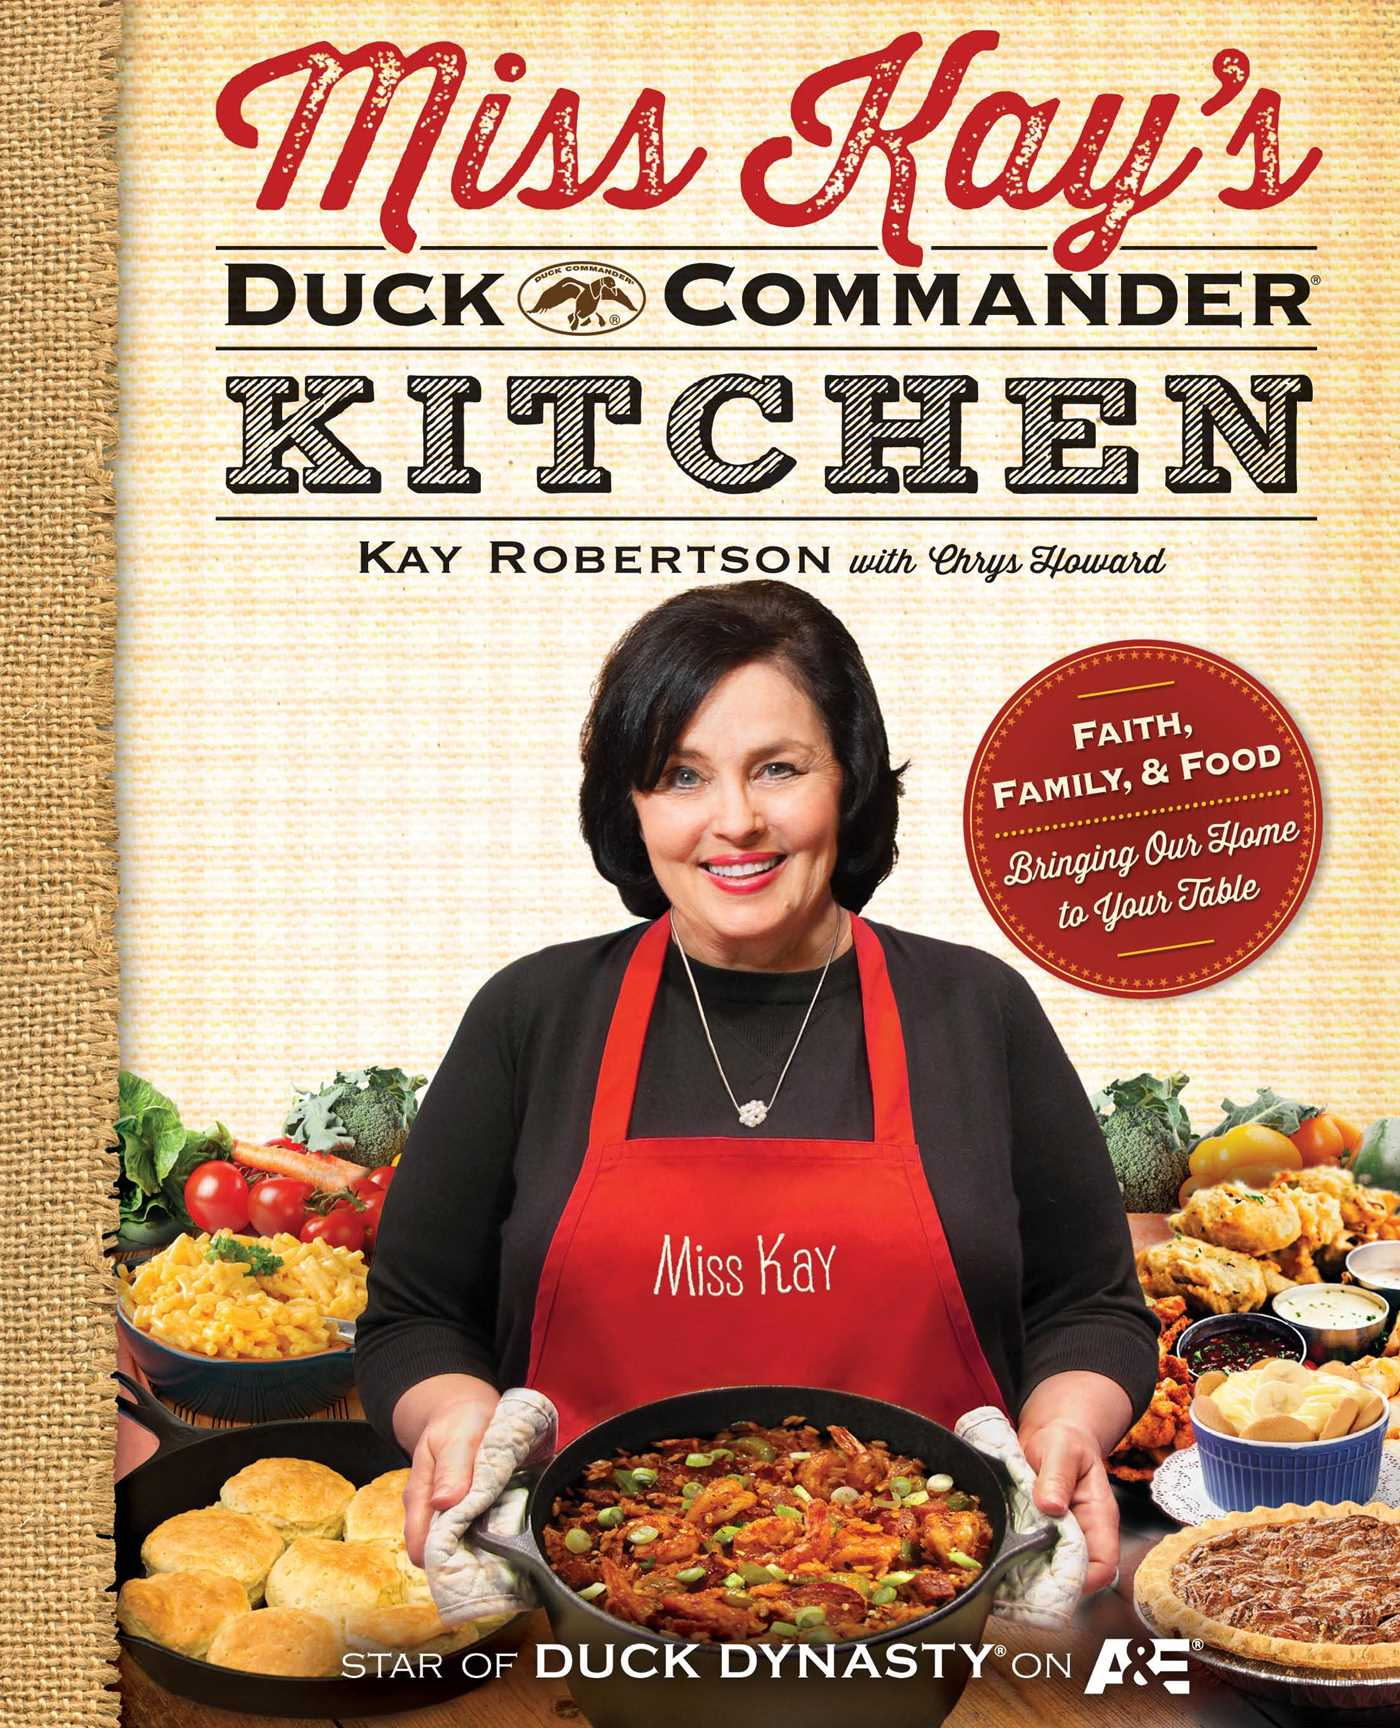 Miss-kays-duck-commander-kitchen-9781476745138_hr